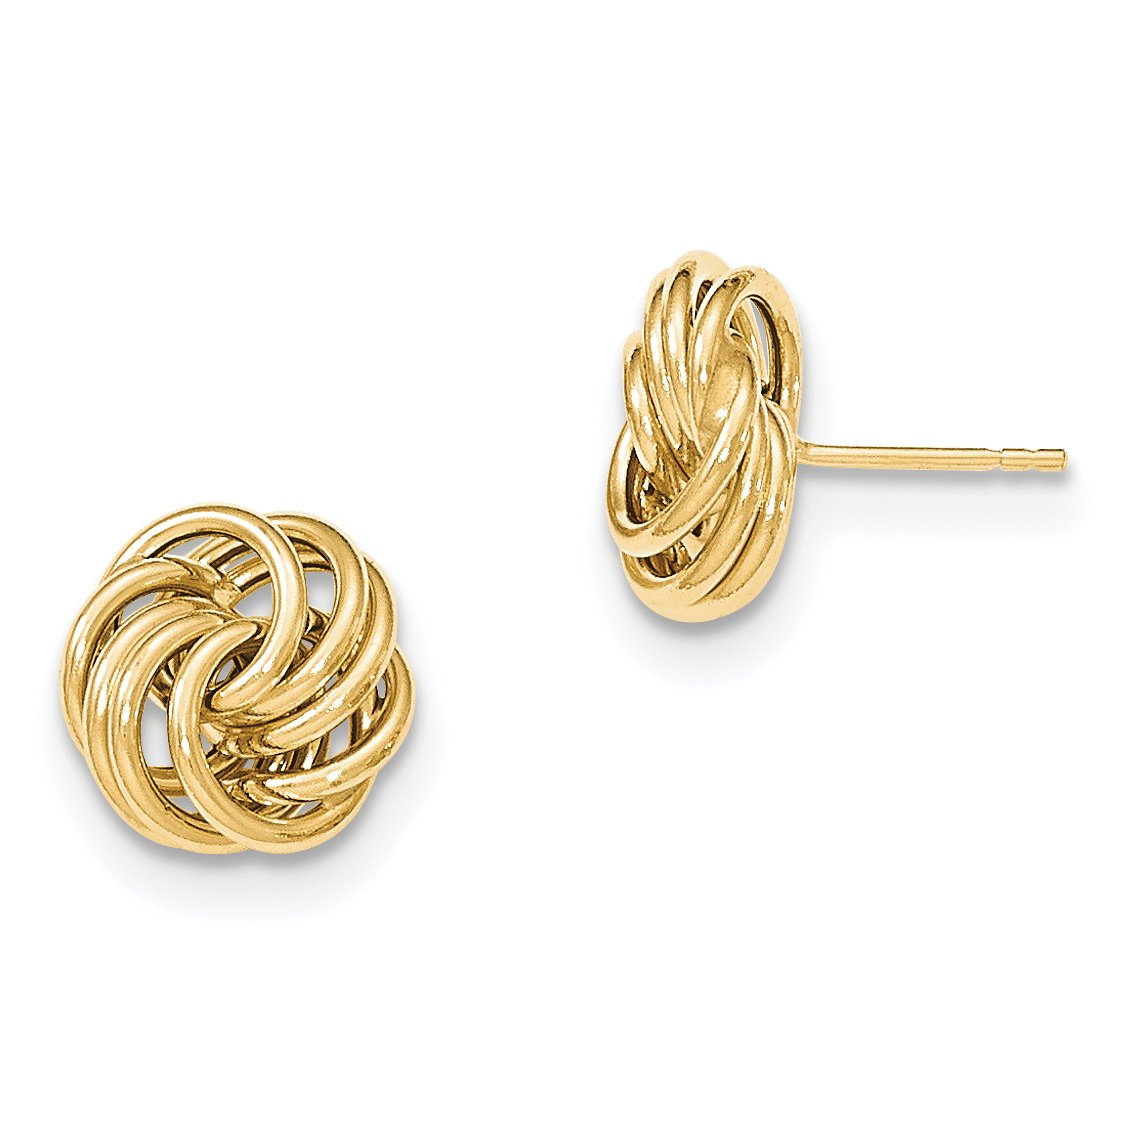 ICE CARATS 14k Yellow Gold Post Stud Ball Button Earrings Fine Jewelry Gift Set For Women Heart